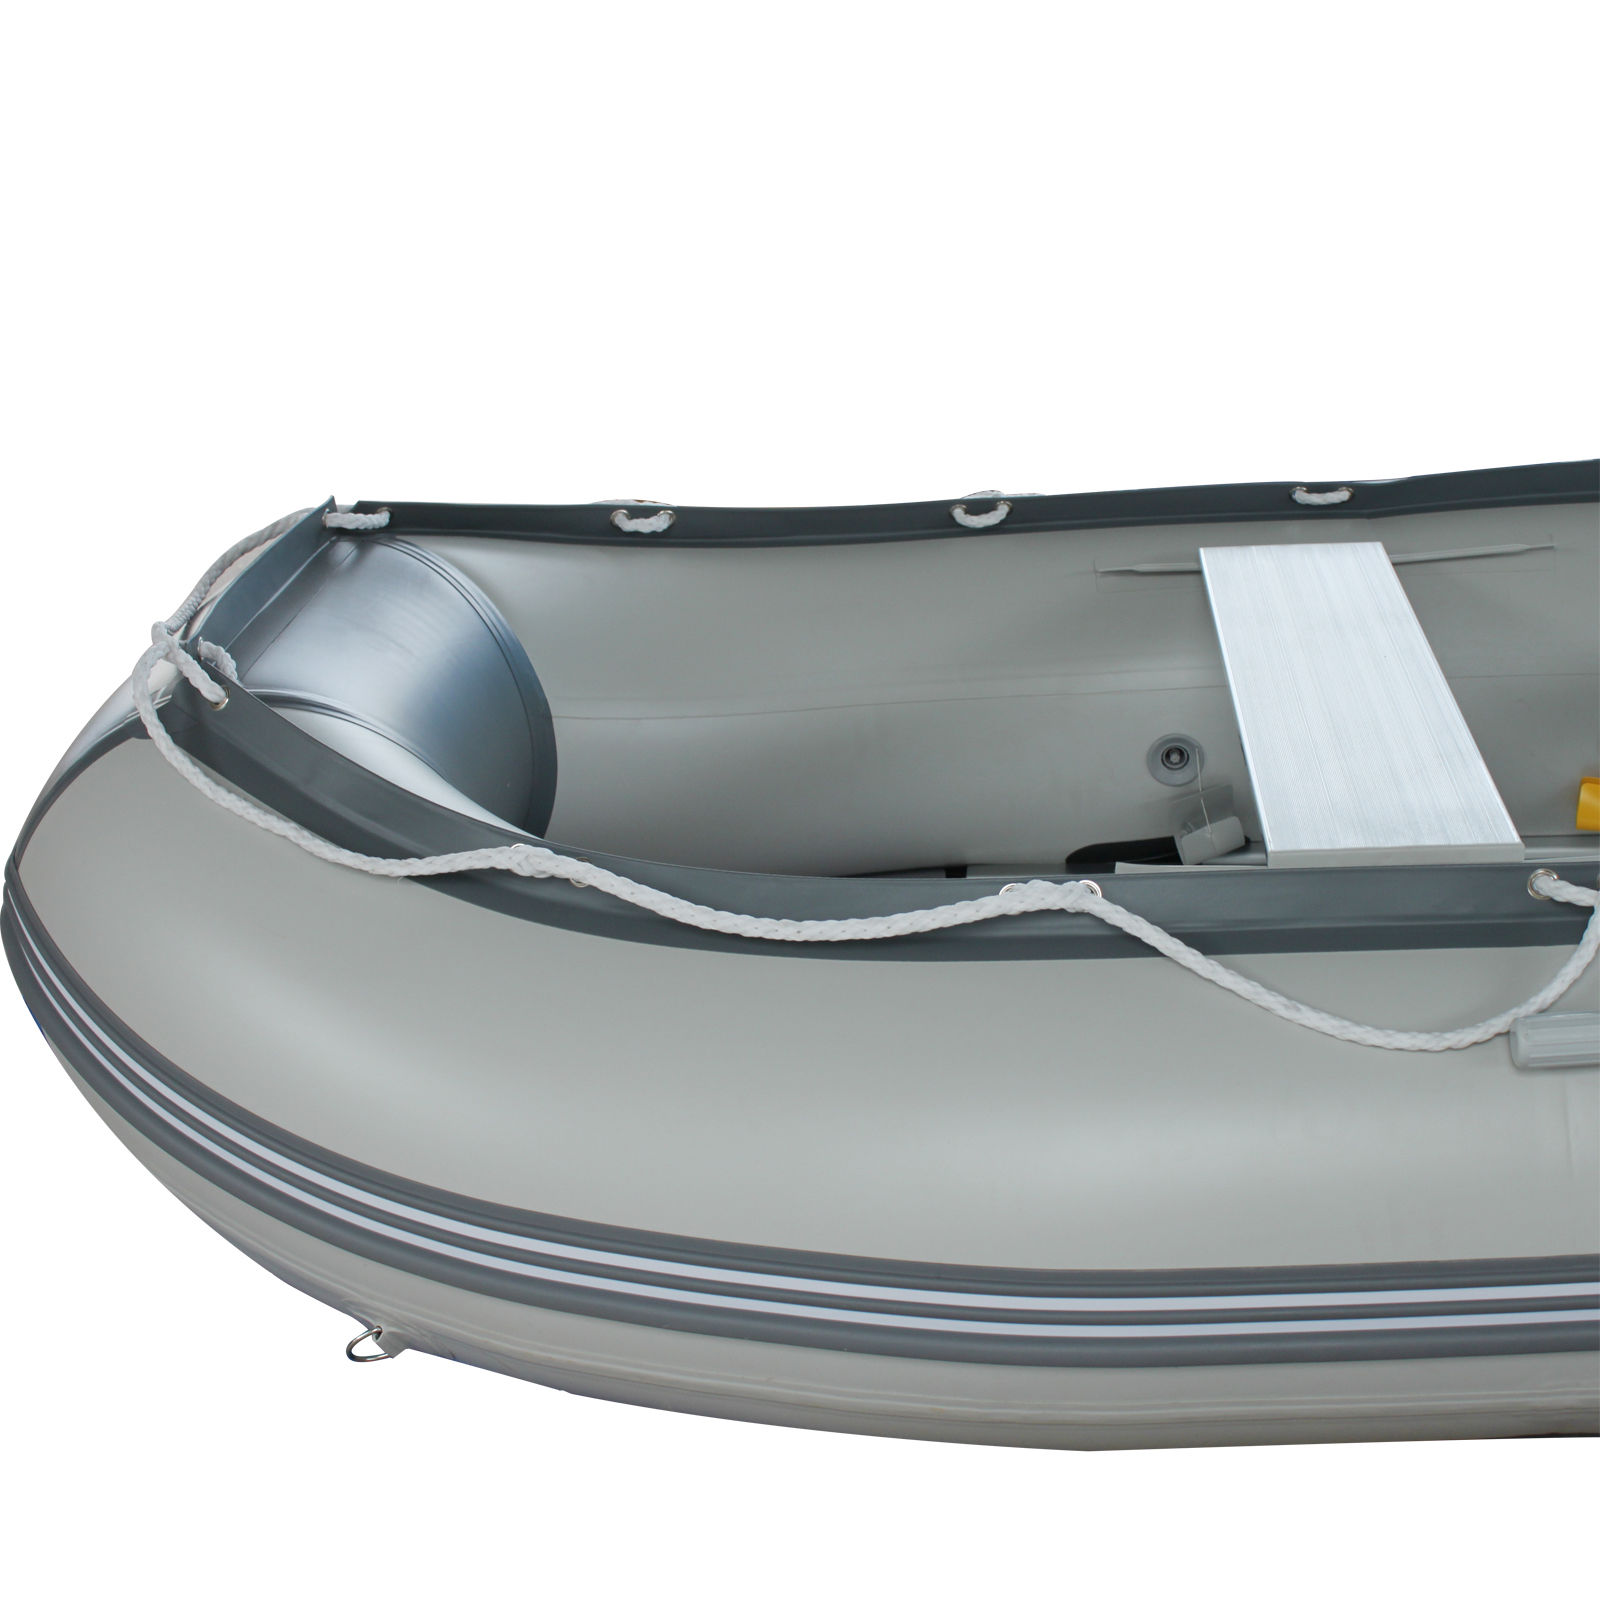 DeporteStar 2019 HZX-HY 300 Inflatable Boat